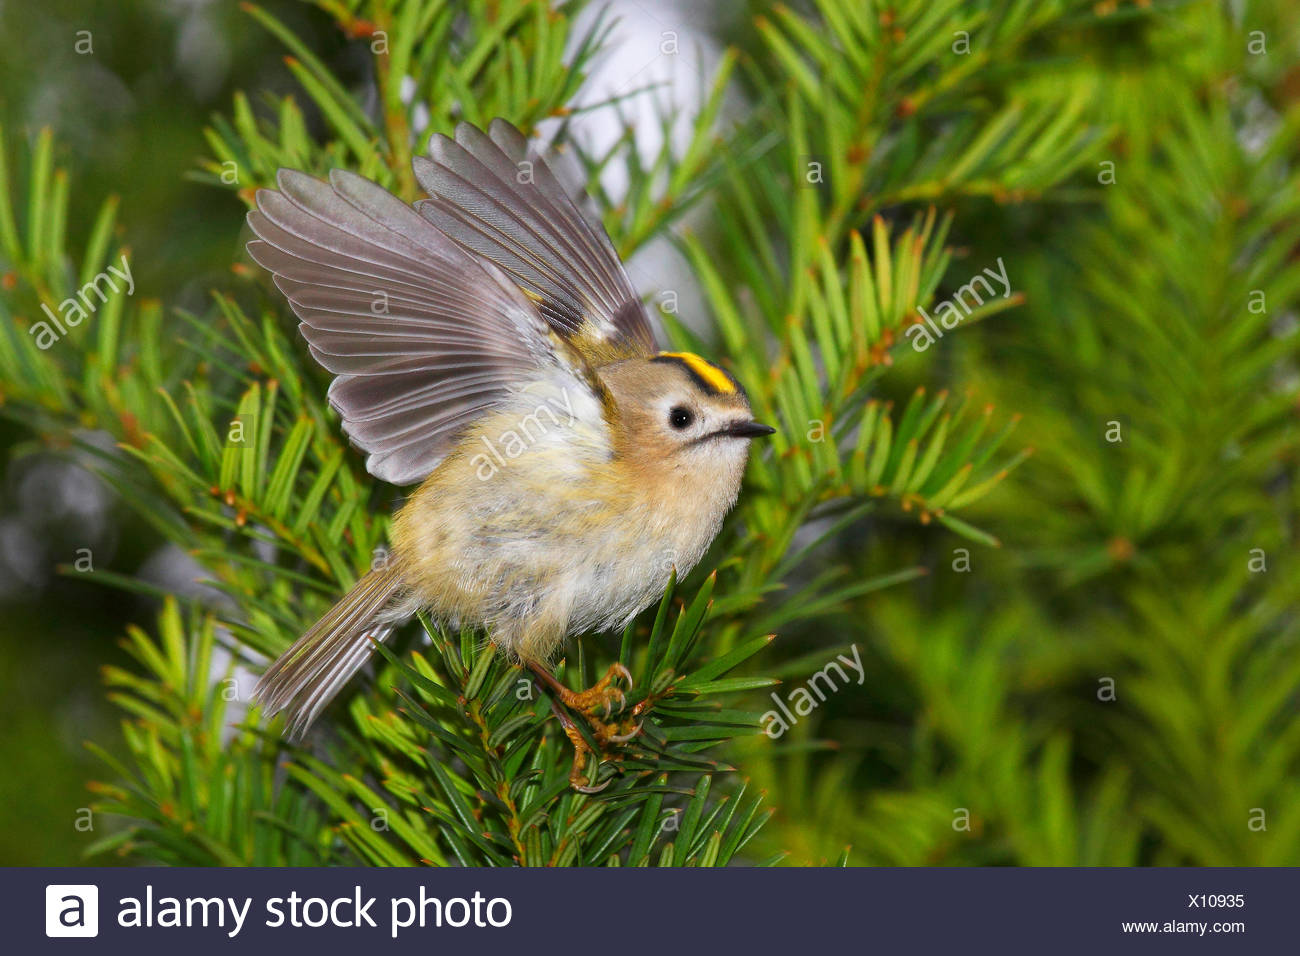 goldcrest (Regulus regulus), female on a yew branch, Germany - Stock Image